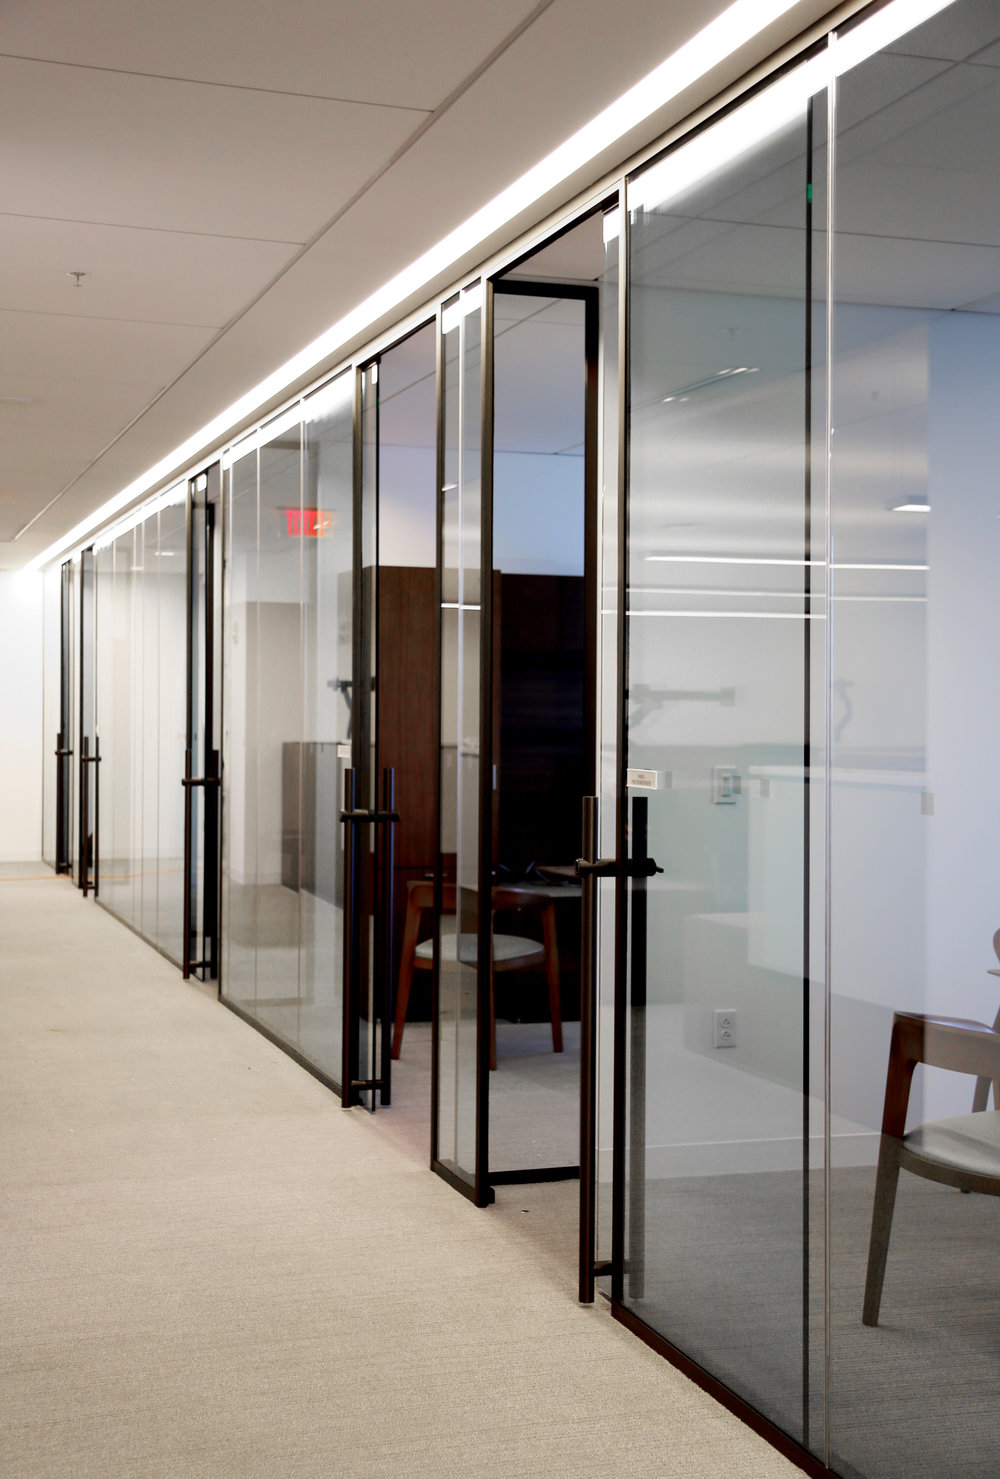 Modernus Demountable Glass Office Wall System - Spaceworks AI.jpg